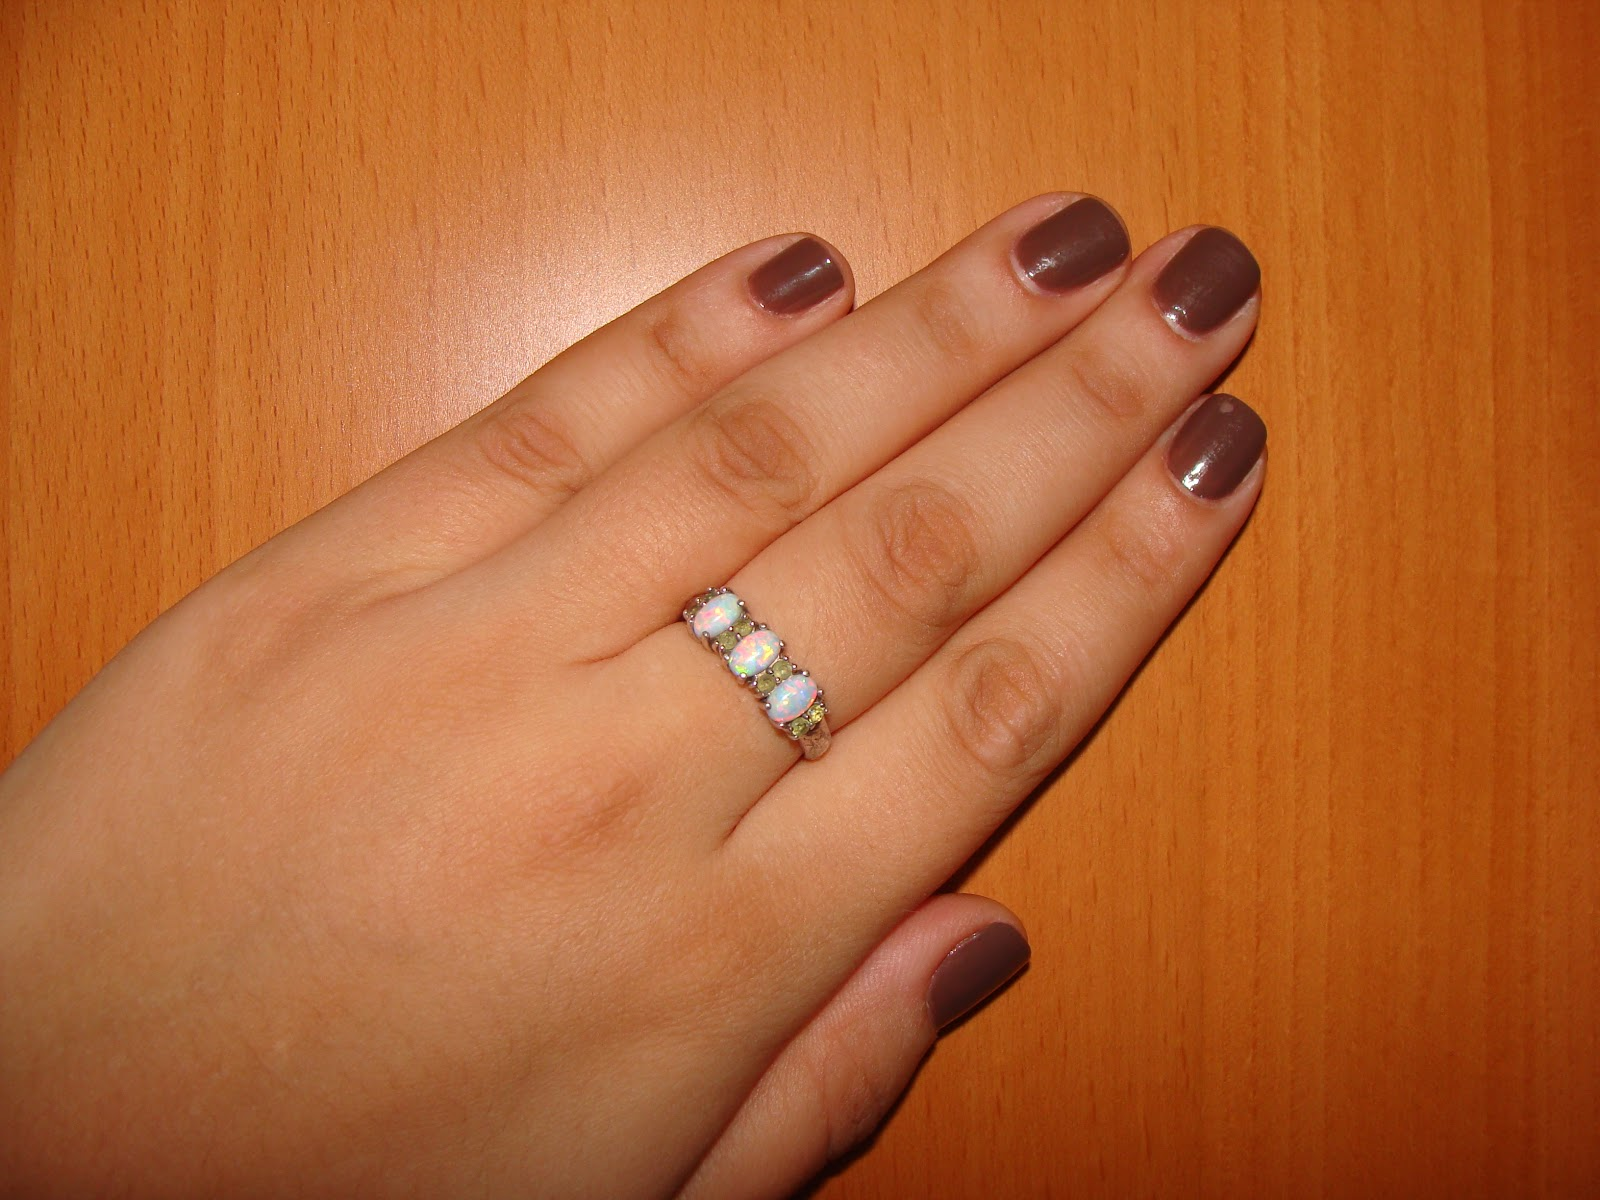 260 Days, No Repeats: Weekly Manicure: Dashing Diva